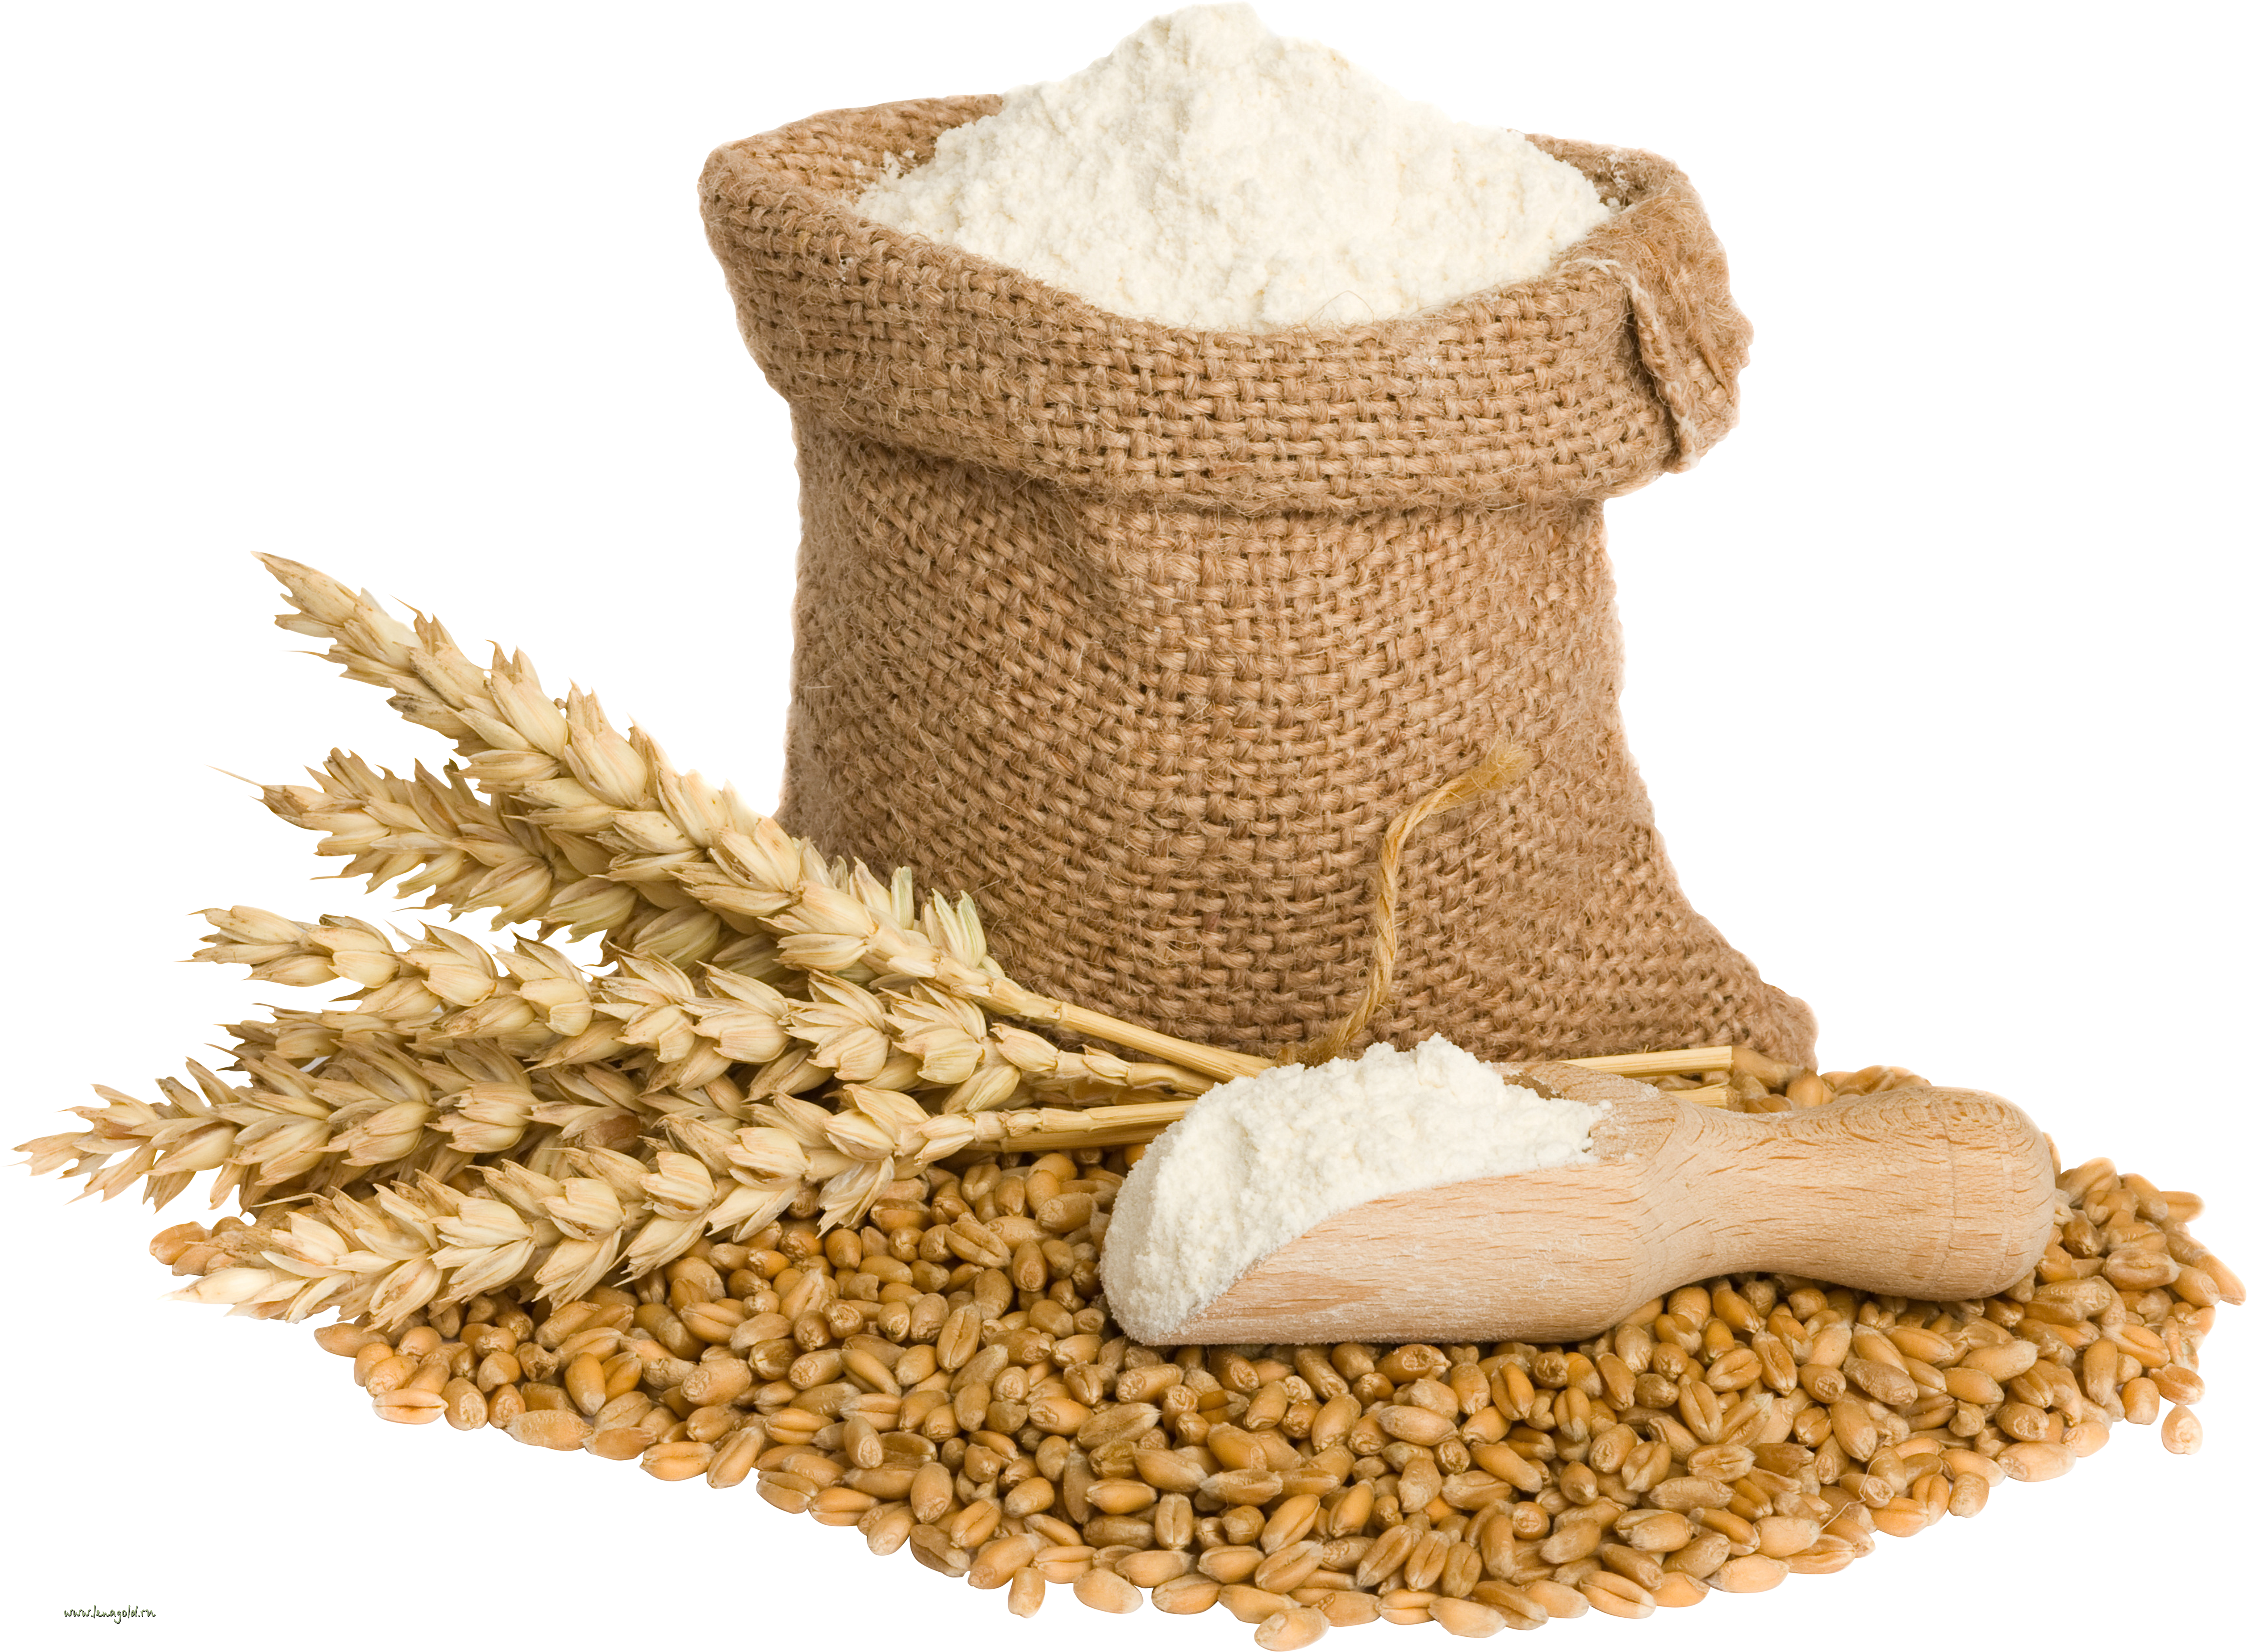 Wheat png image purepng. Grain clipart 5 food